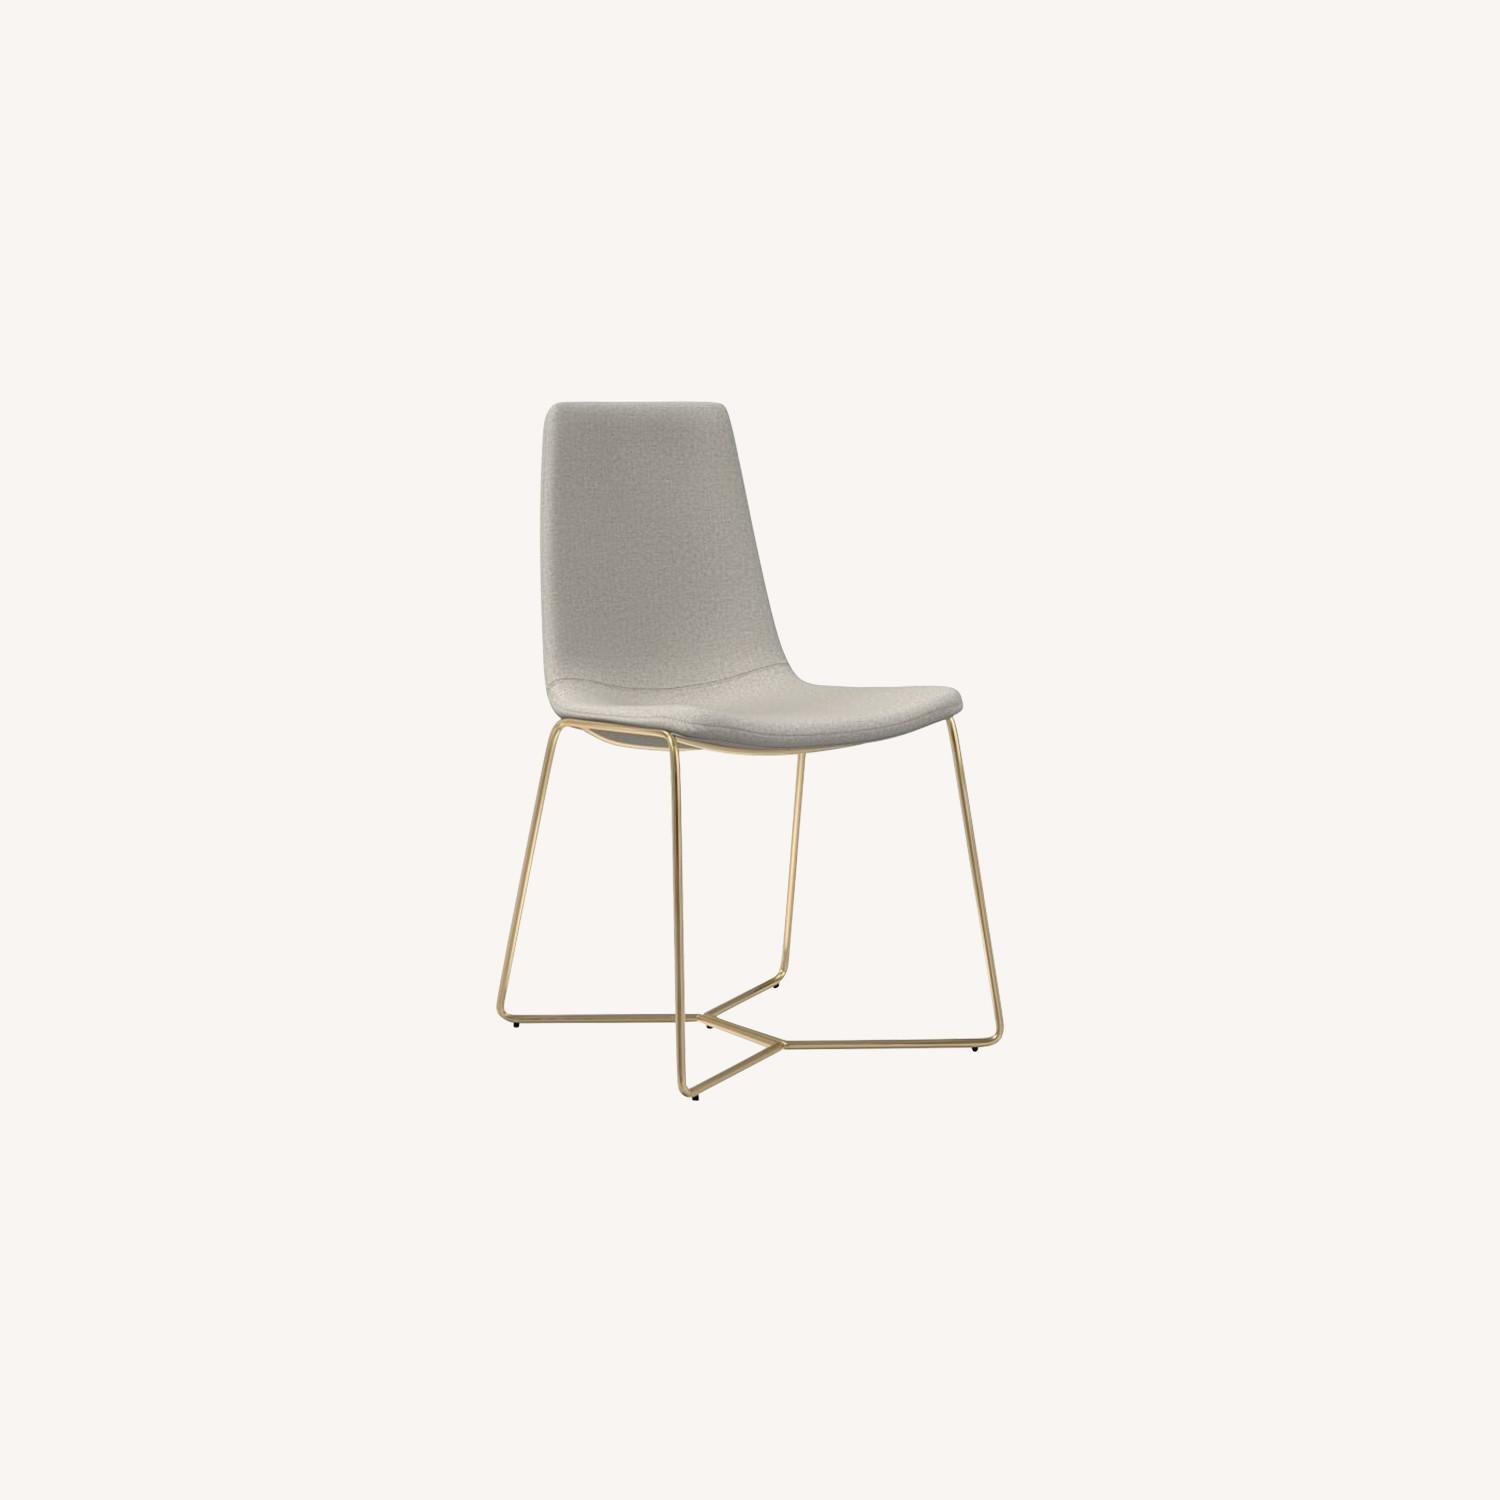 West Elm Slope Dining Chair - image-0